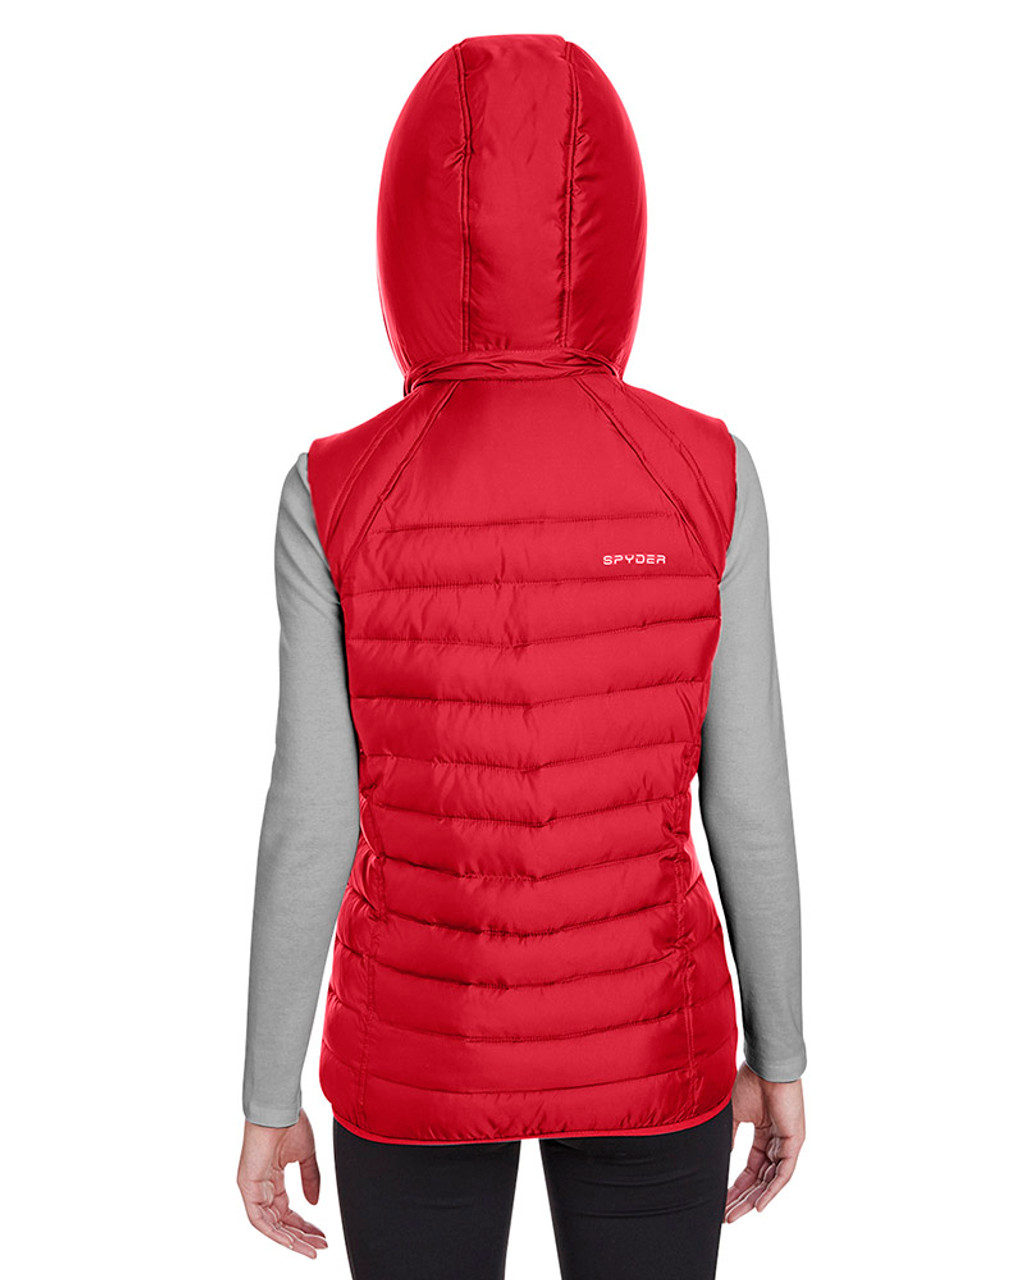 Red - back, S16641 Spyder Ladies' Supreme Puffer Vest | Blankclothing.ca